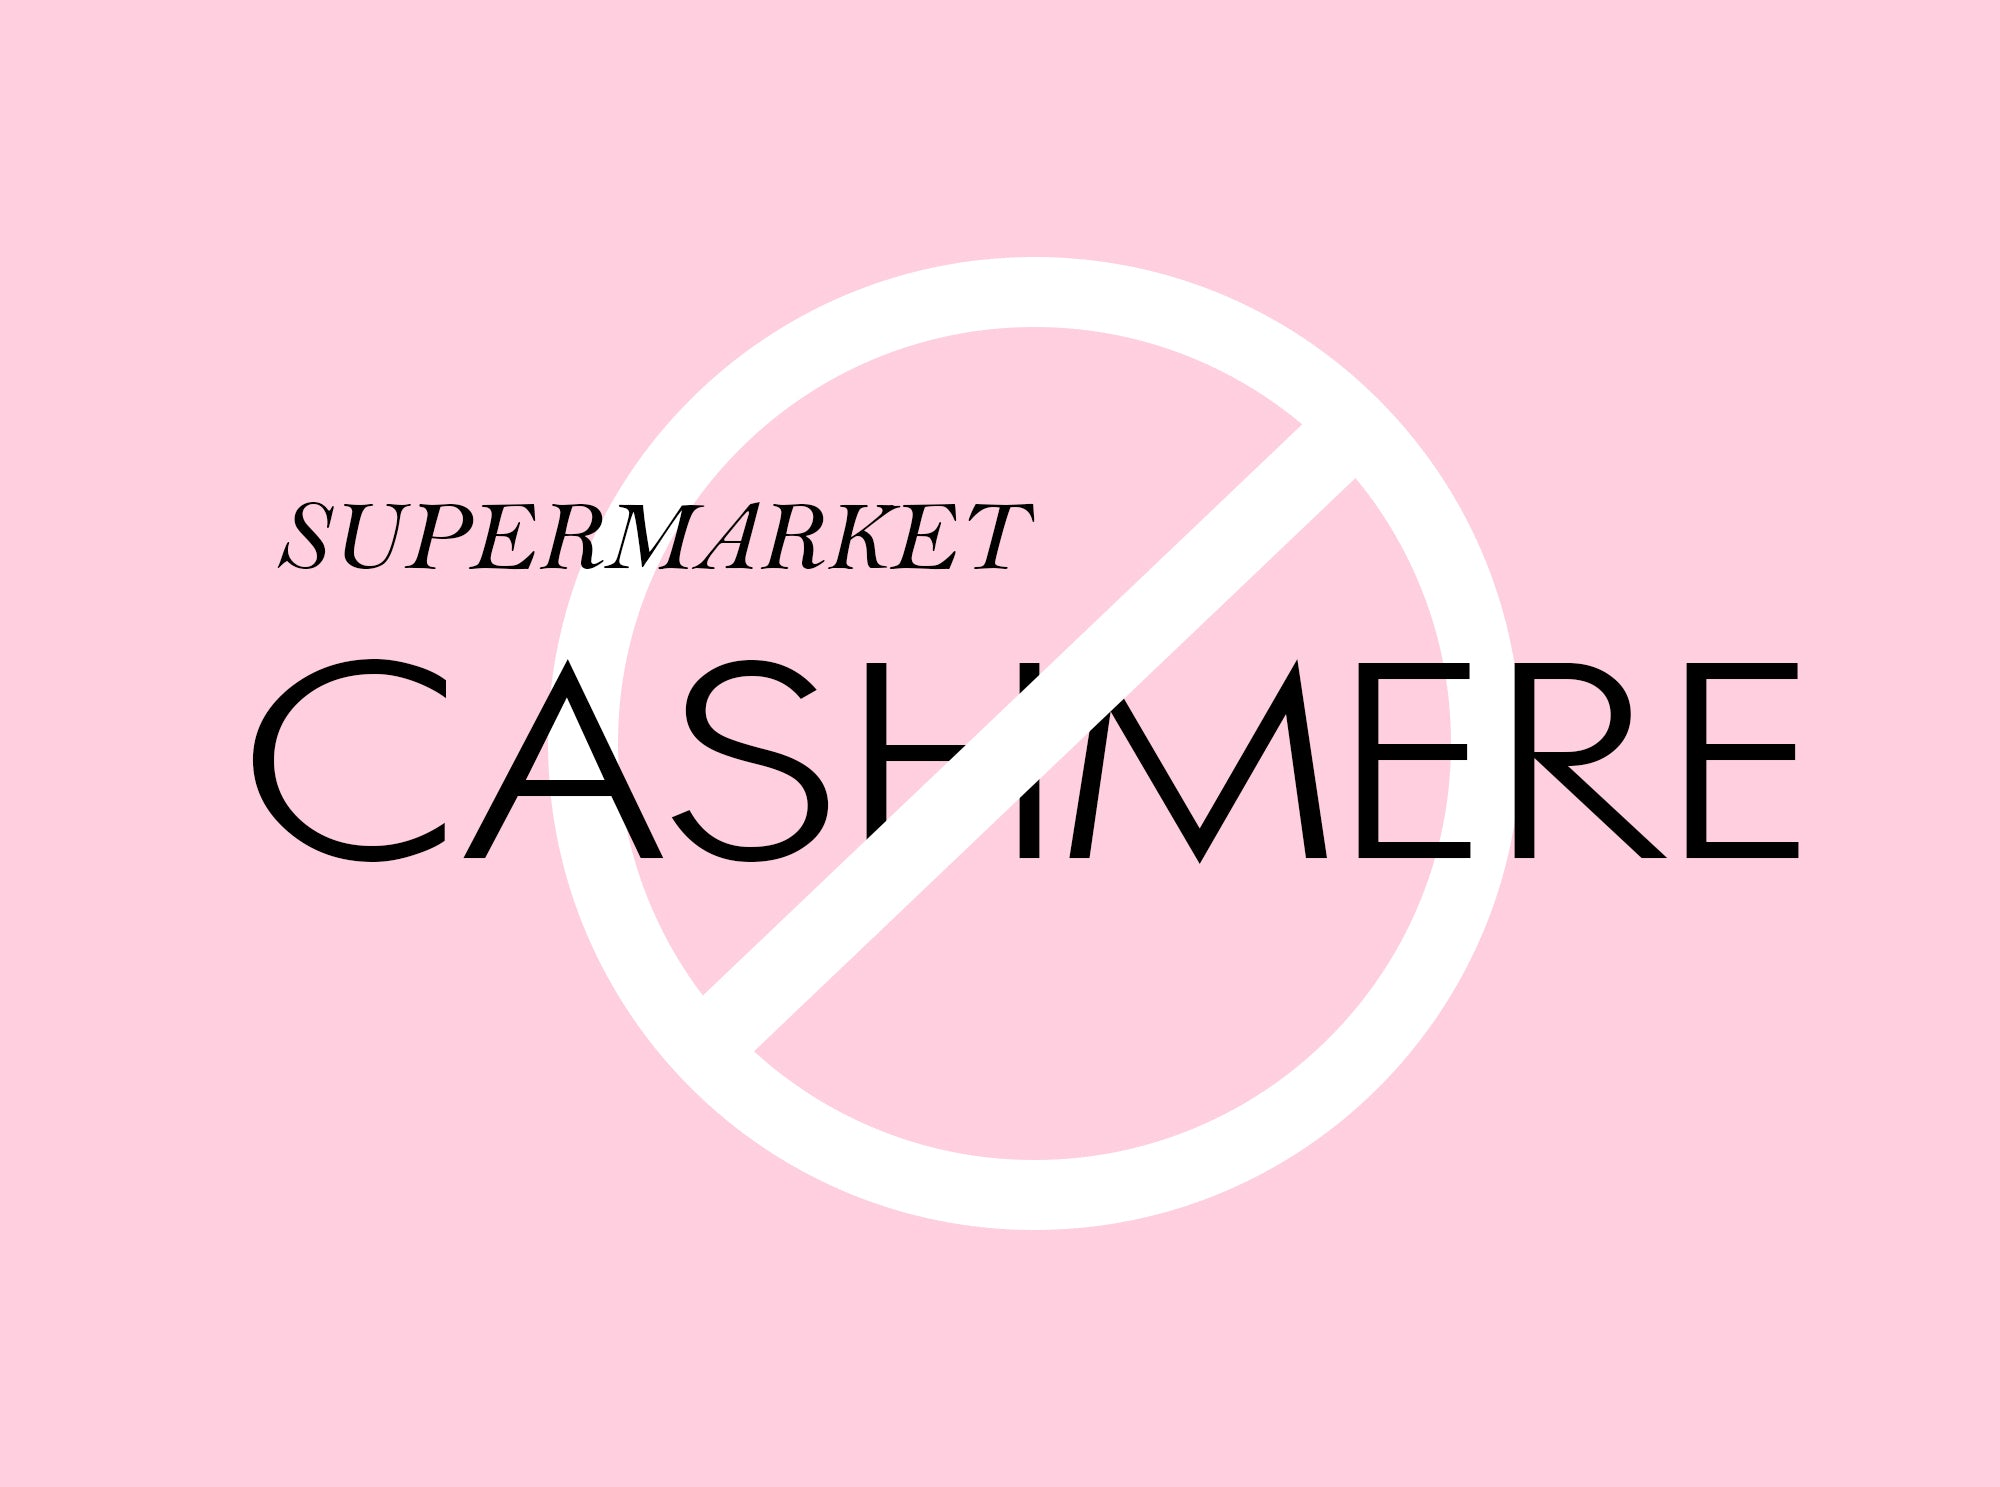 Supporting the blanket ban on 'supermarket' cashmere...